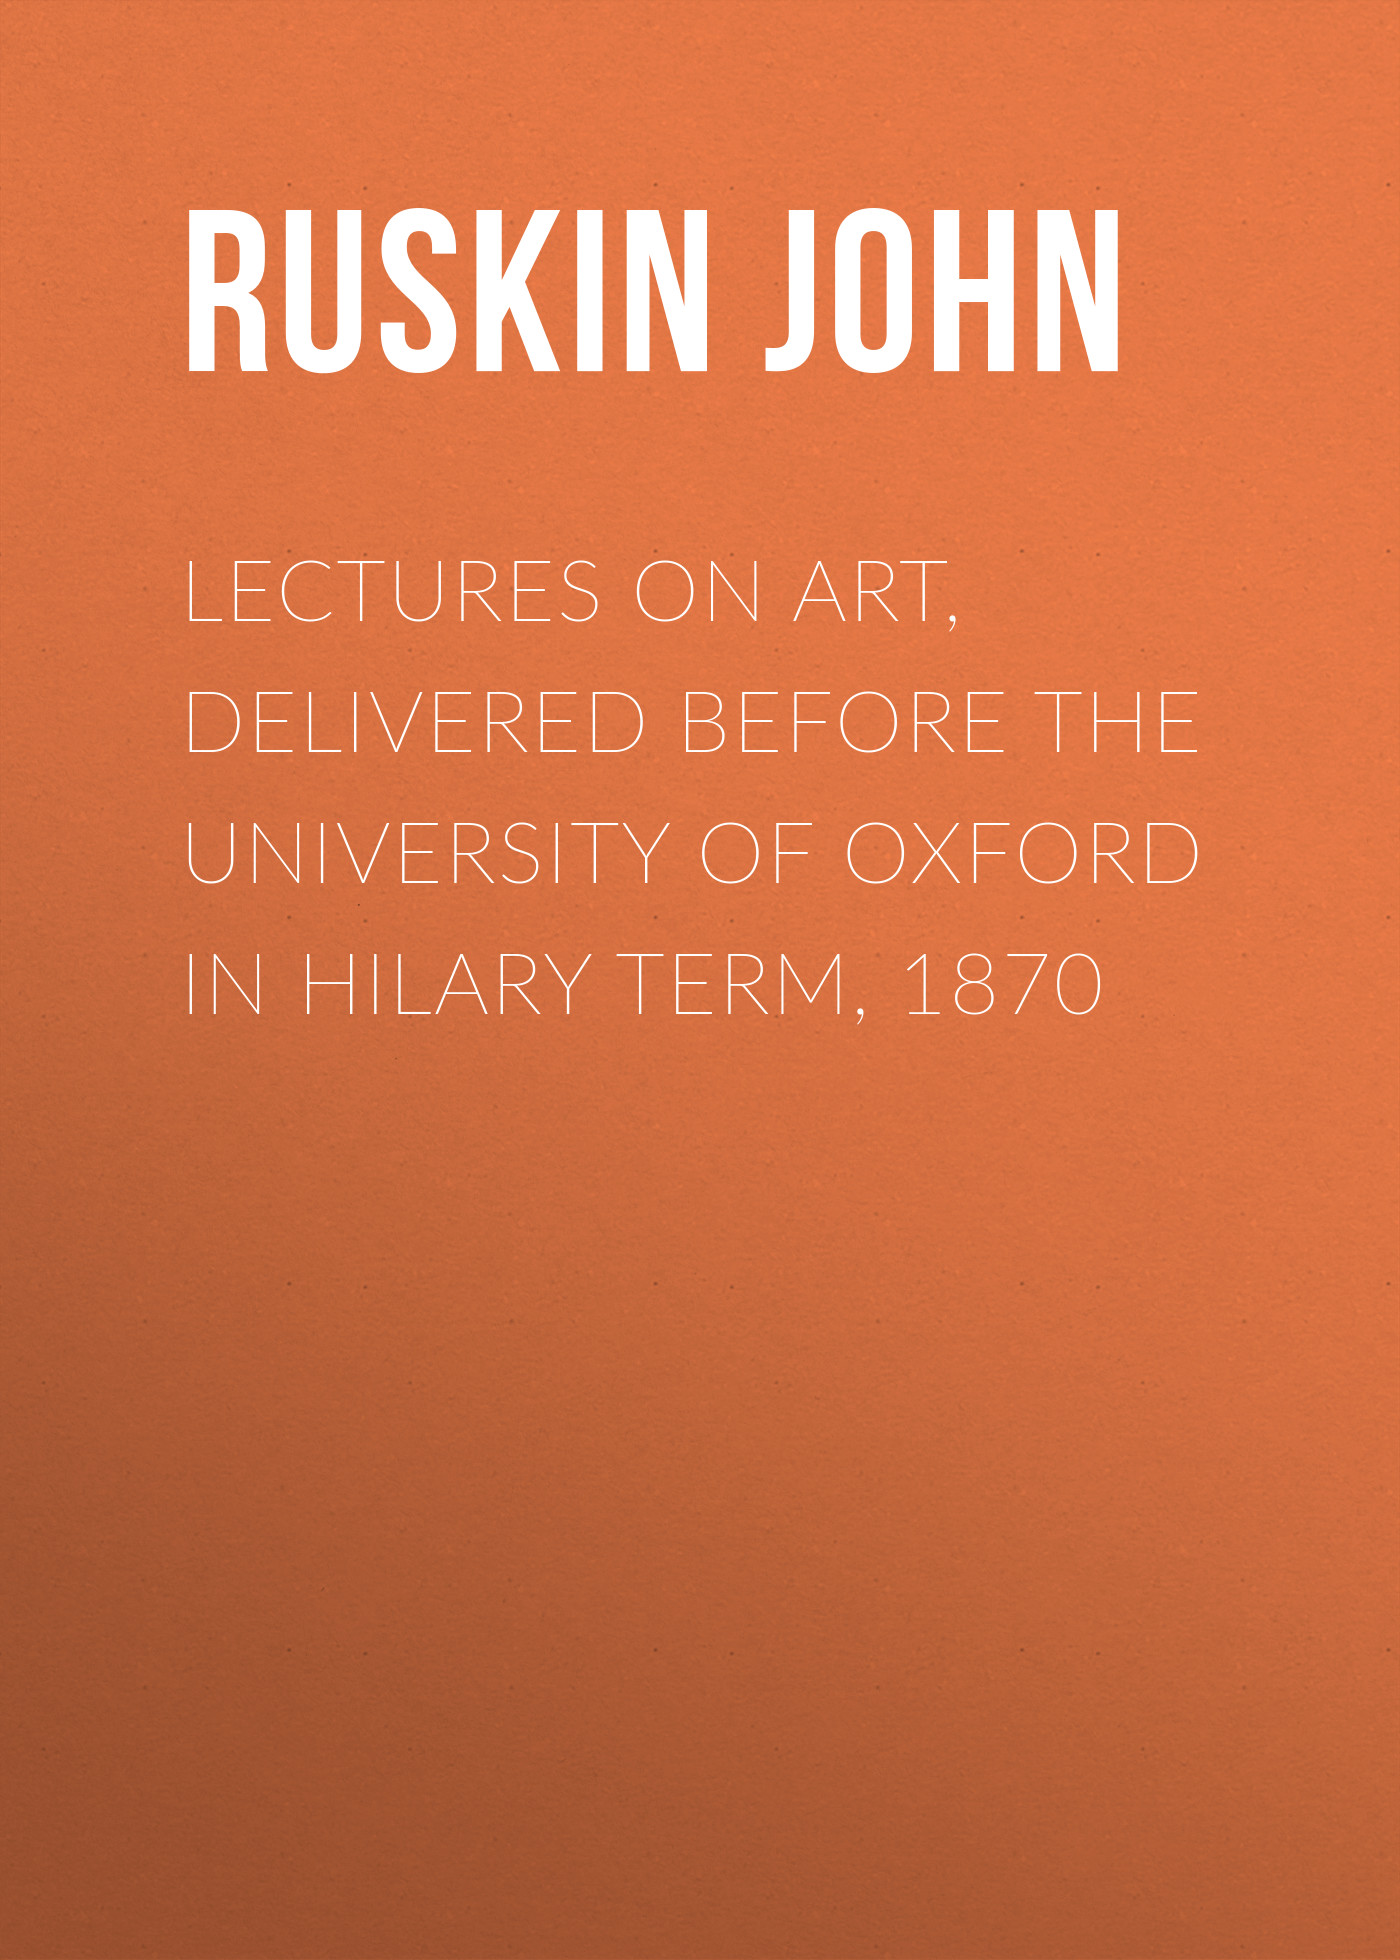 купить Ruskin John Lectures on Art, Delivered Before the University of Oxford in Hilary Term, 1870 по цене 0 рублей